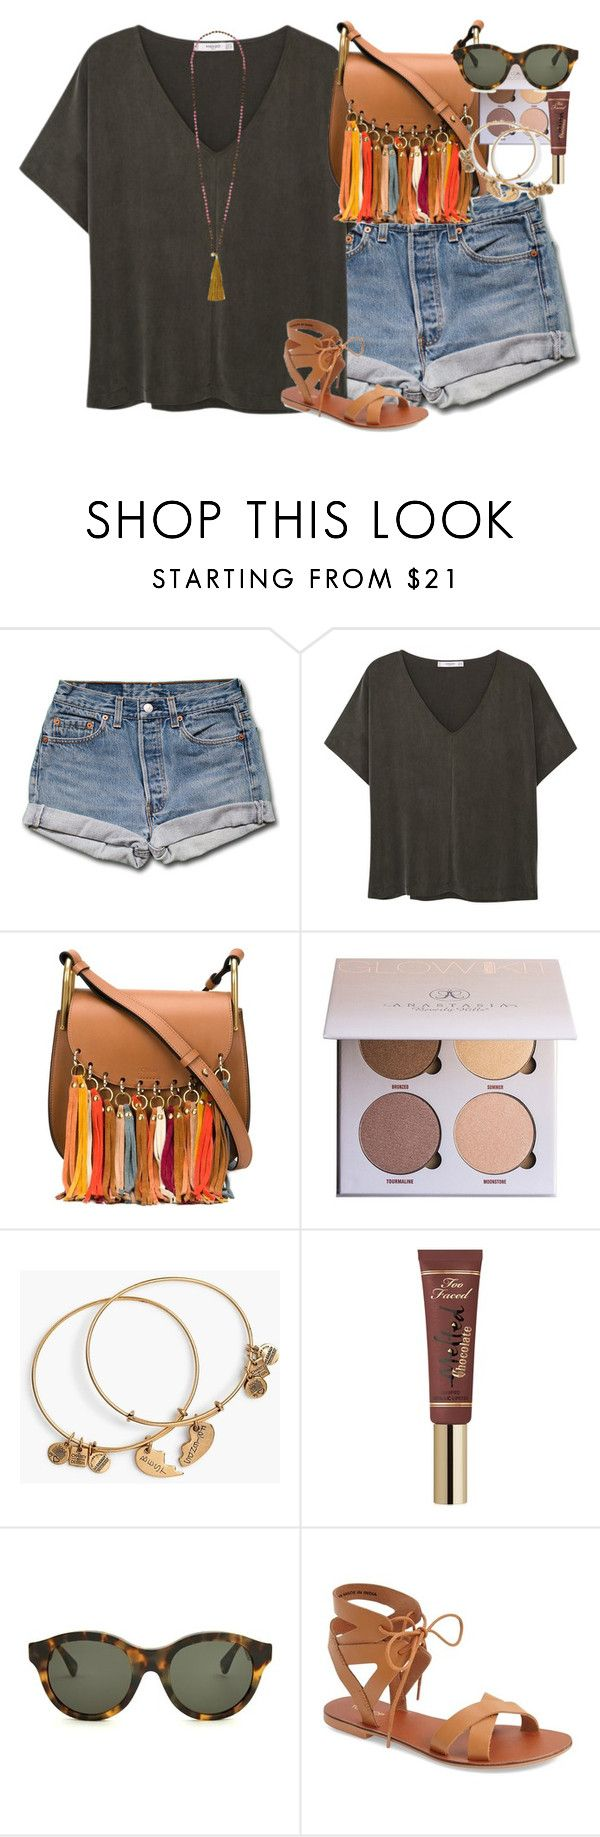 """""""at the pool !!"""" by smbprep ❤ liked on Polyvore featuring MANGO, Chloé, Alex and Ani, Too Faced Cosmetics, RetroSuperFuture, Topshop and French Connection"""